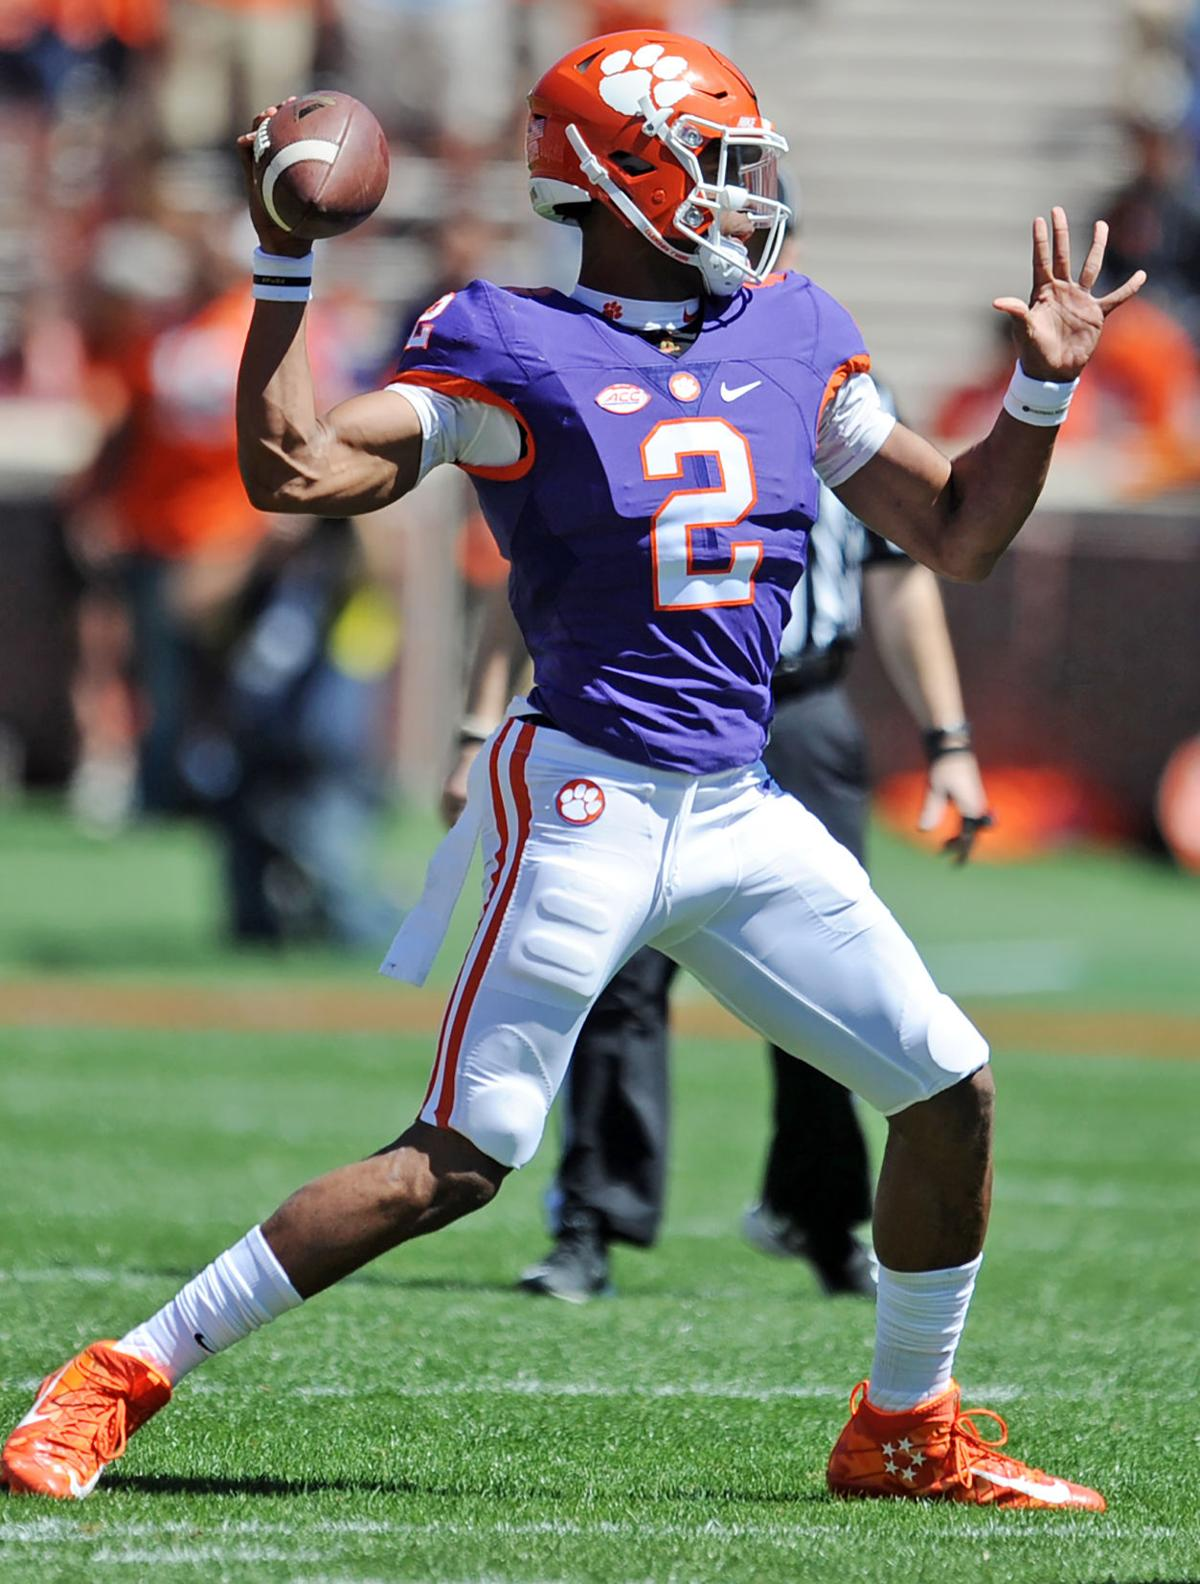 Silicon Valley Internship Gives 7 Clemson Players